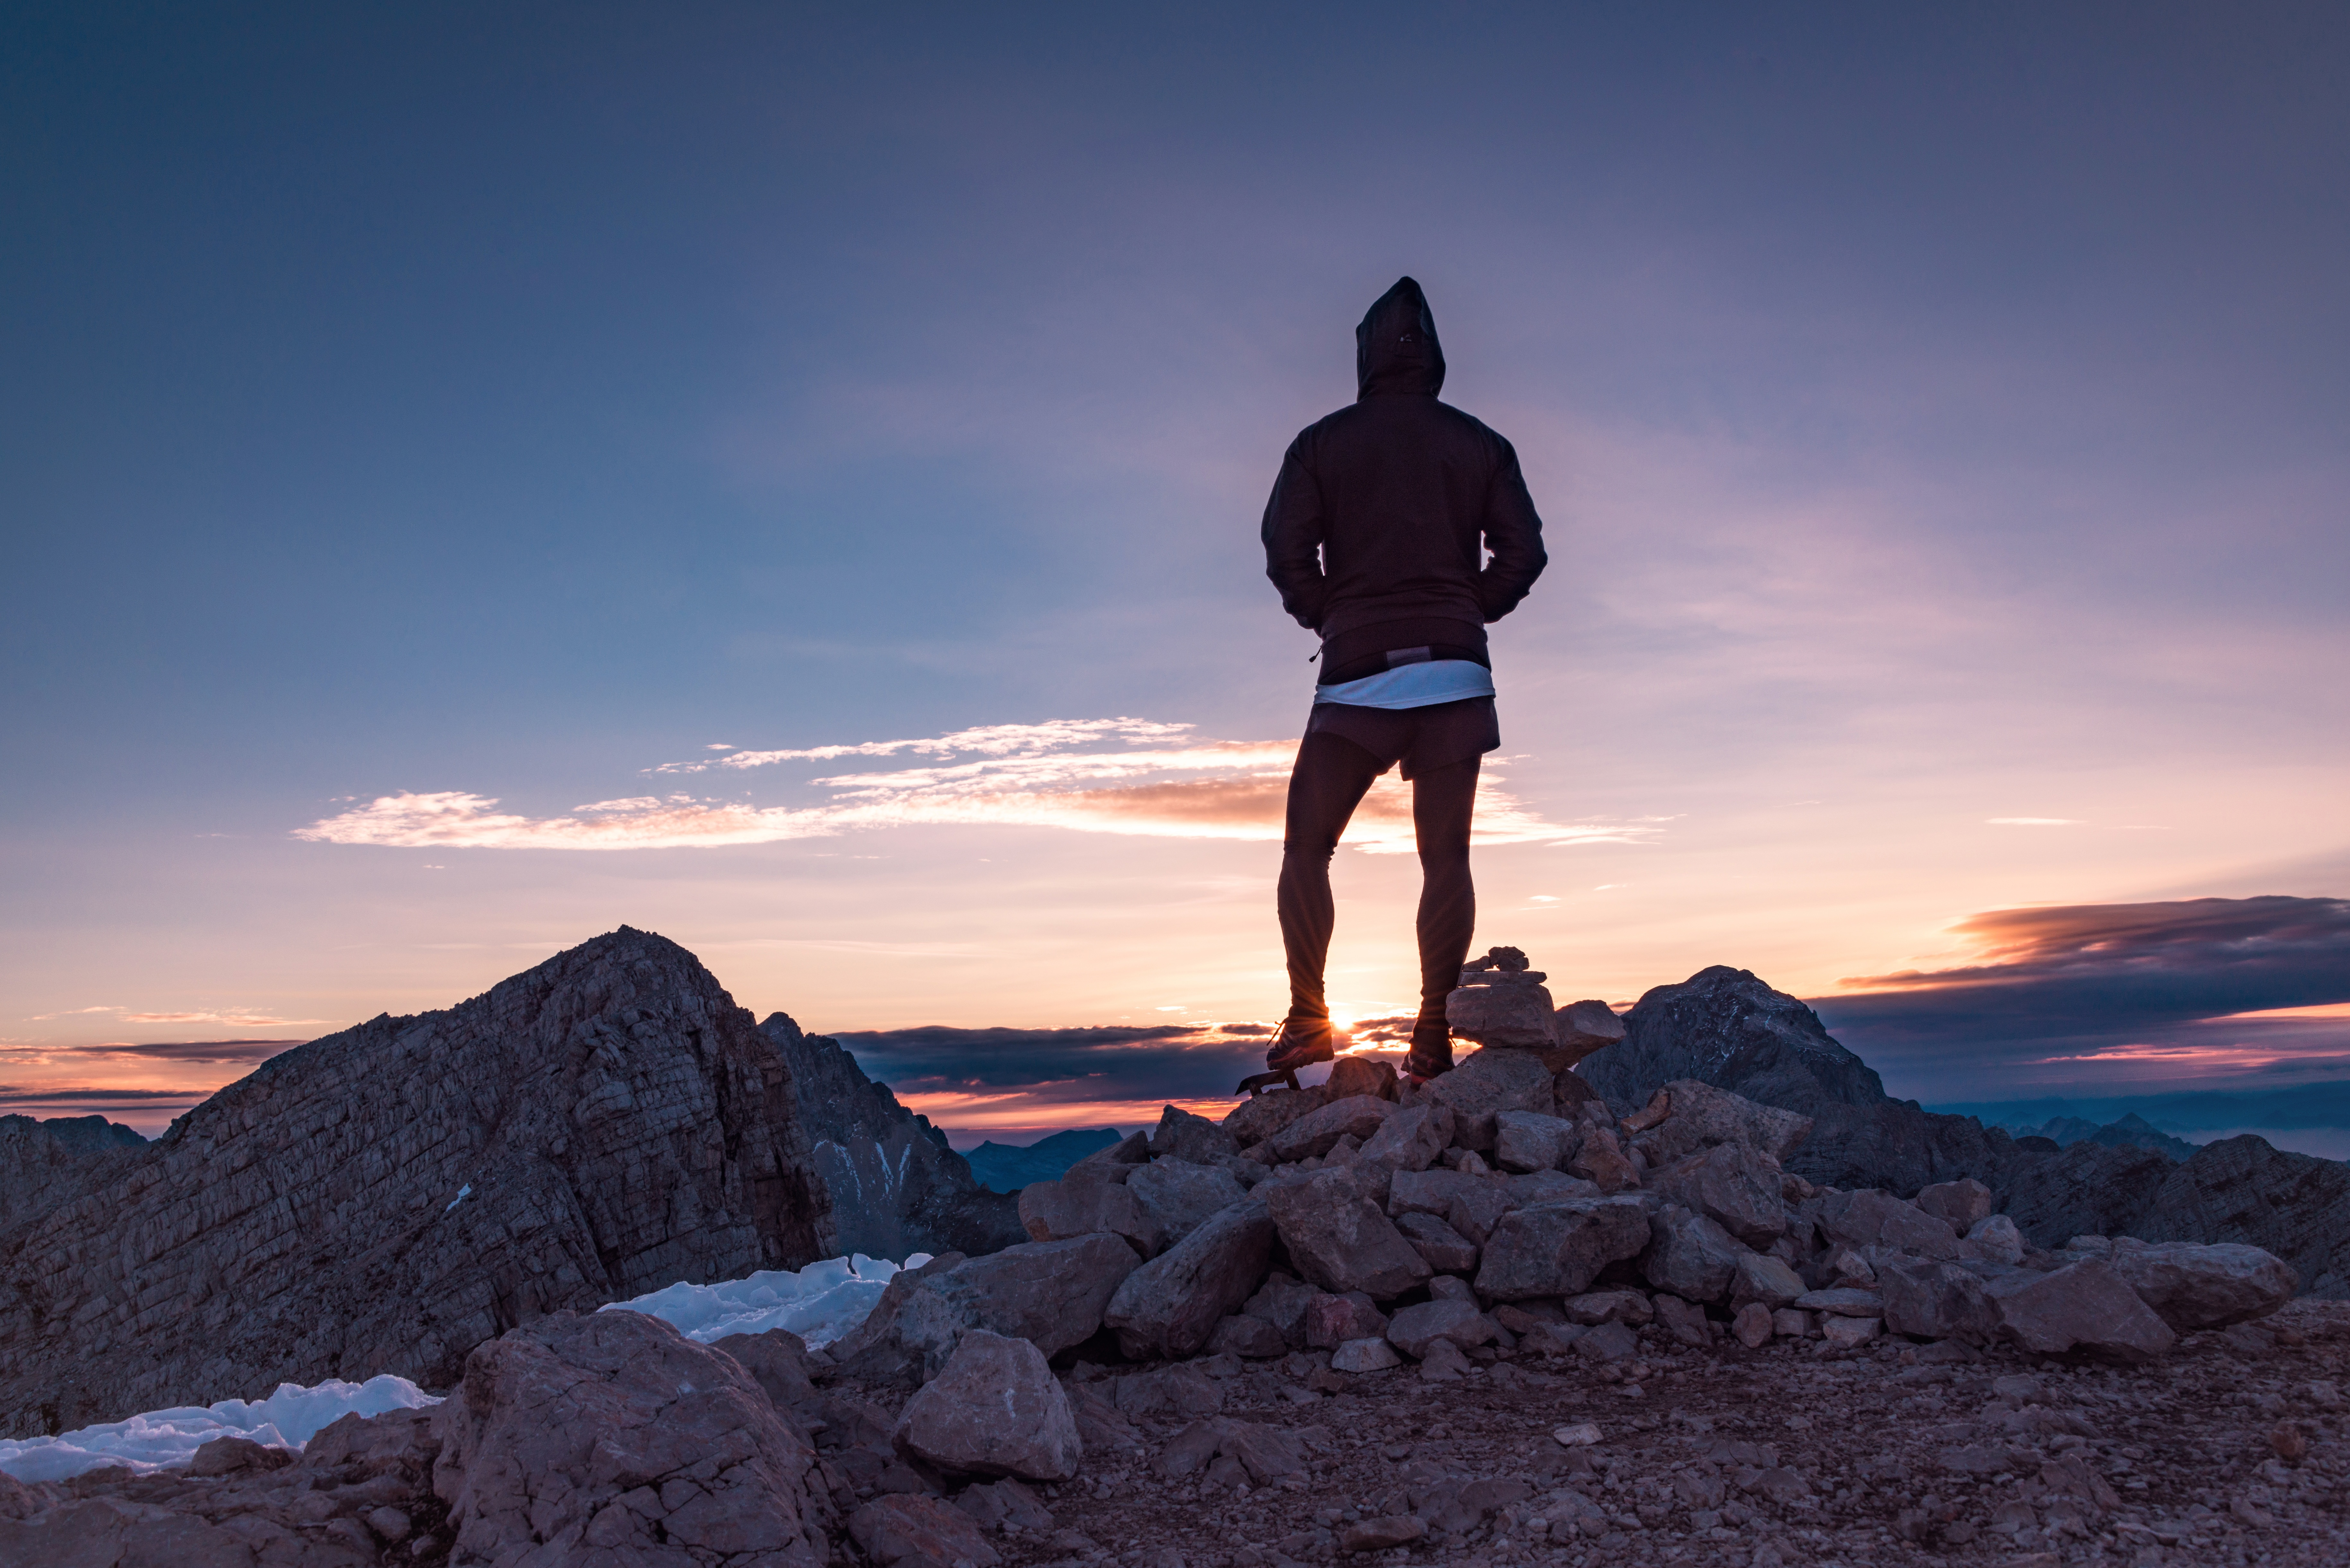 A hiker standing on top of a mountain.